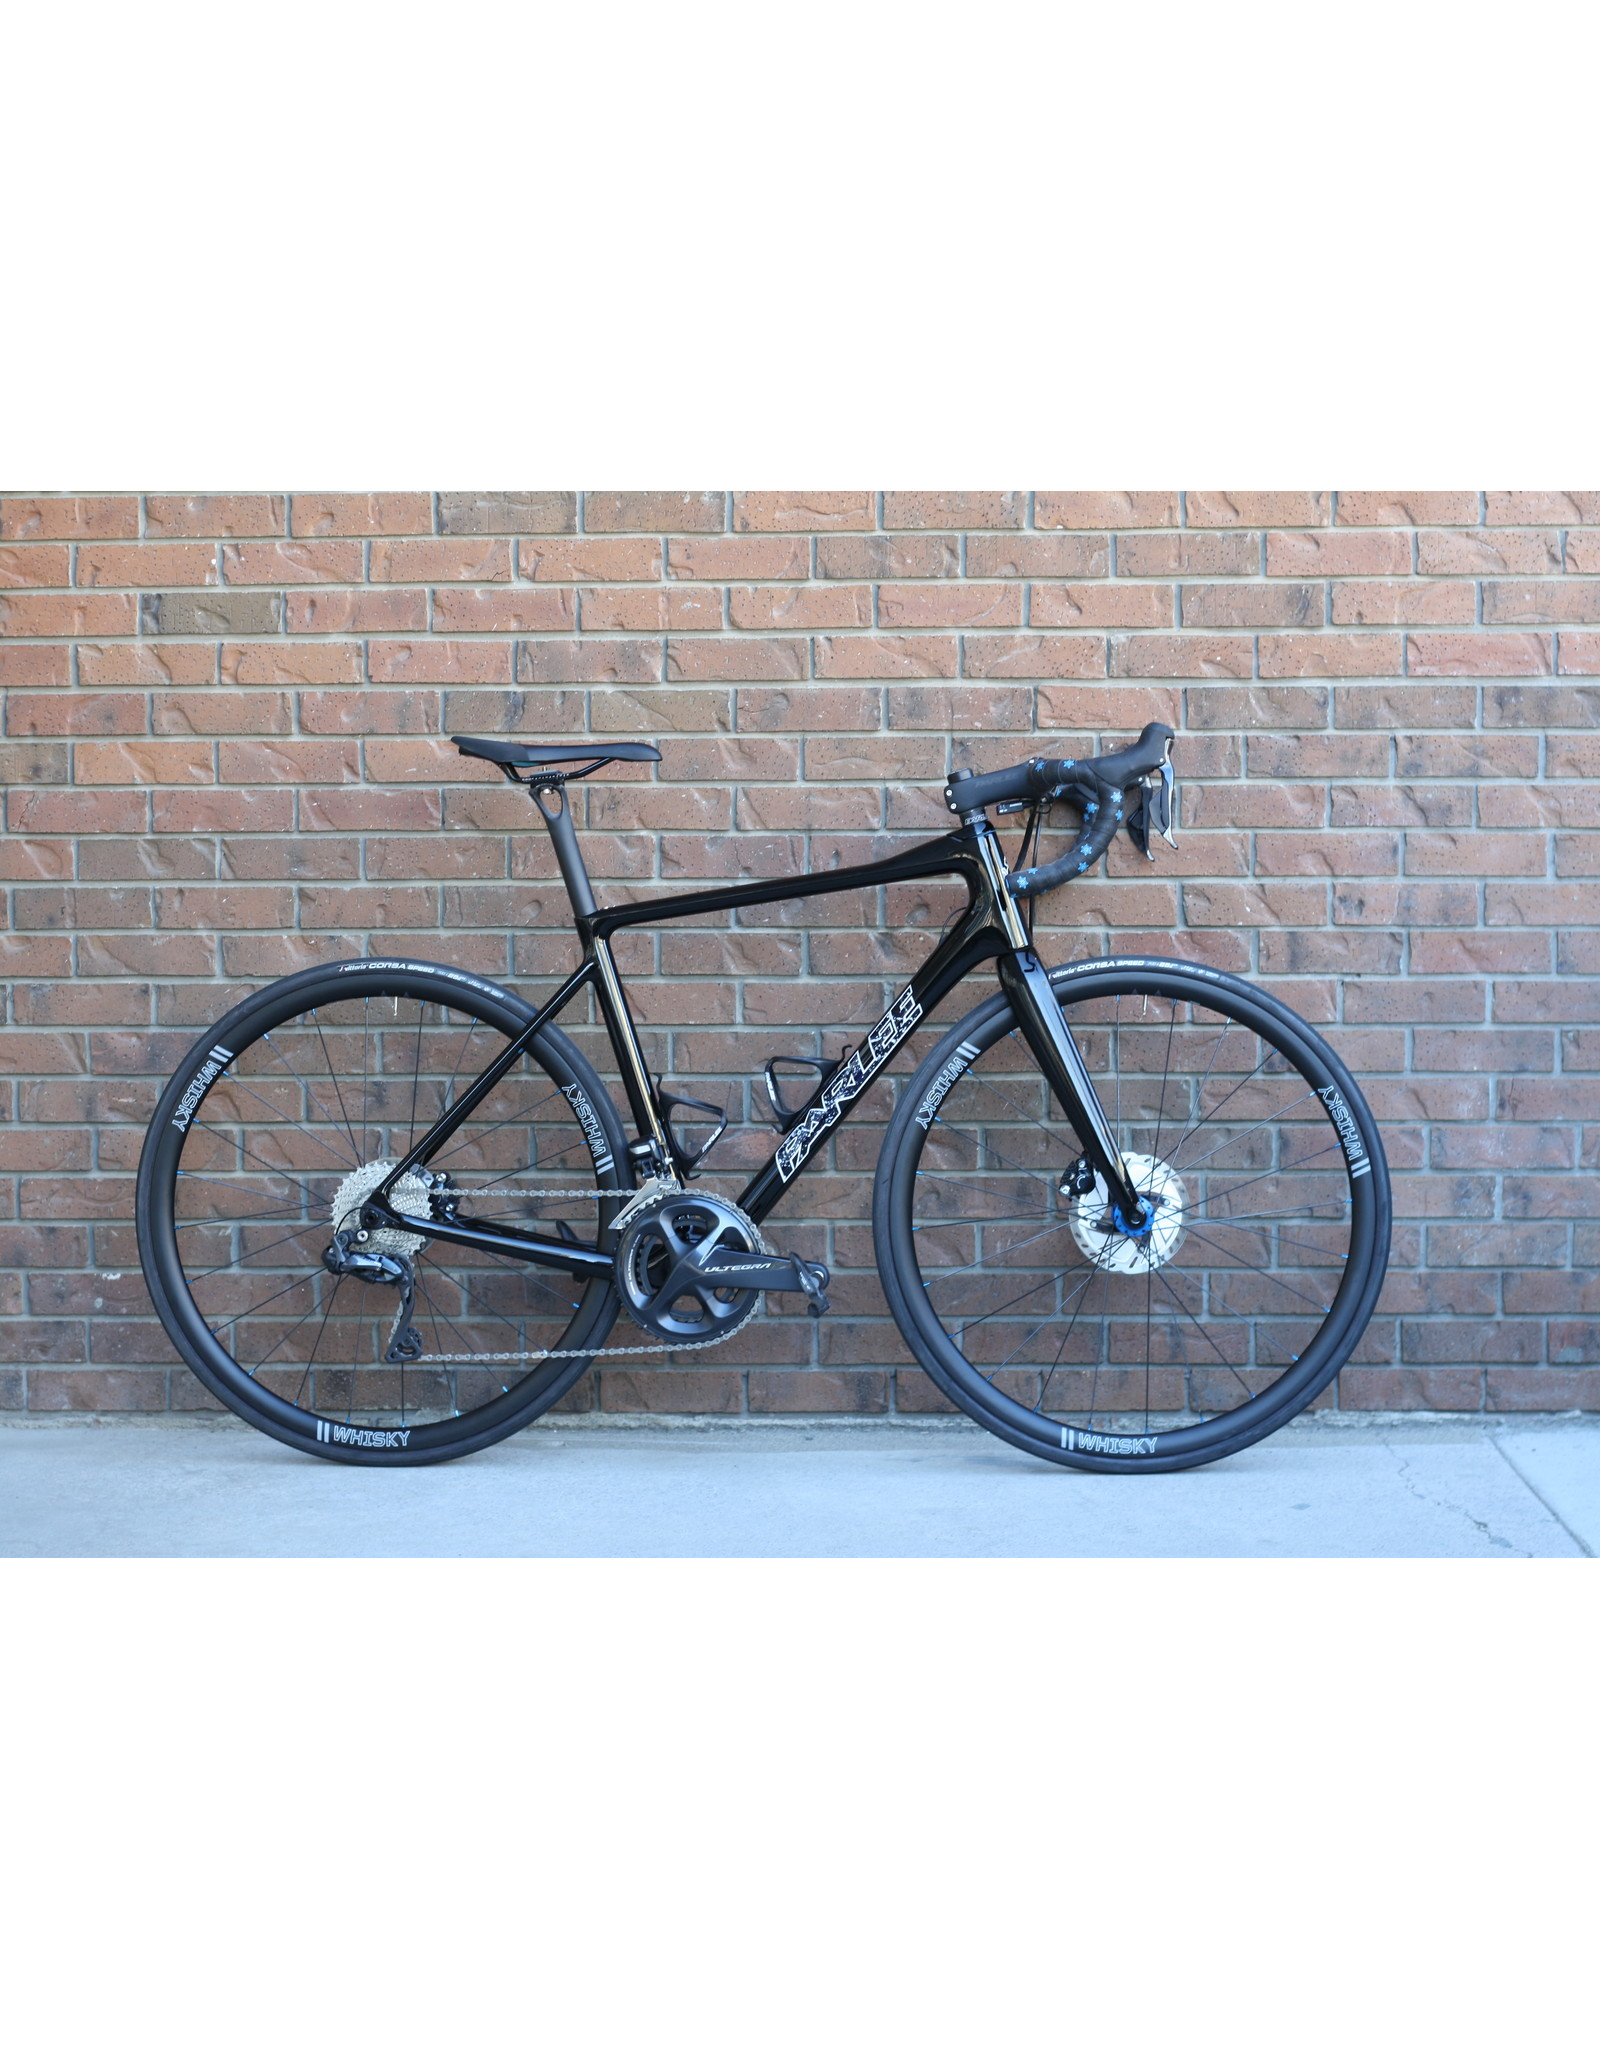 Parlee Parlee Altum Disc LE Frameset (headset, handlebar, stem, & seatpost included)